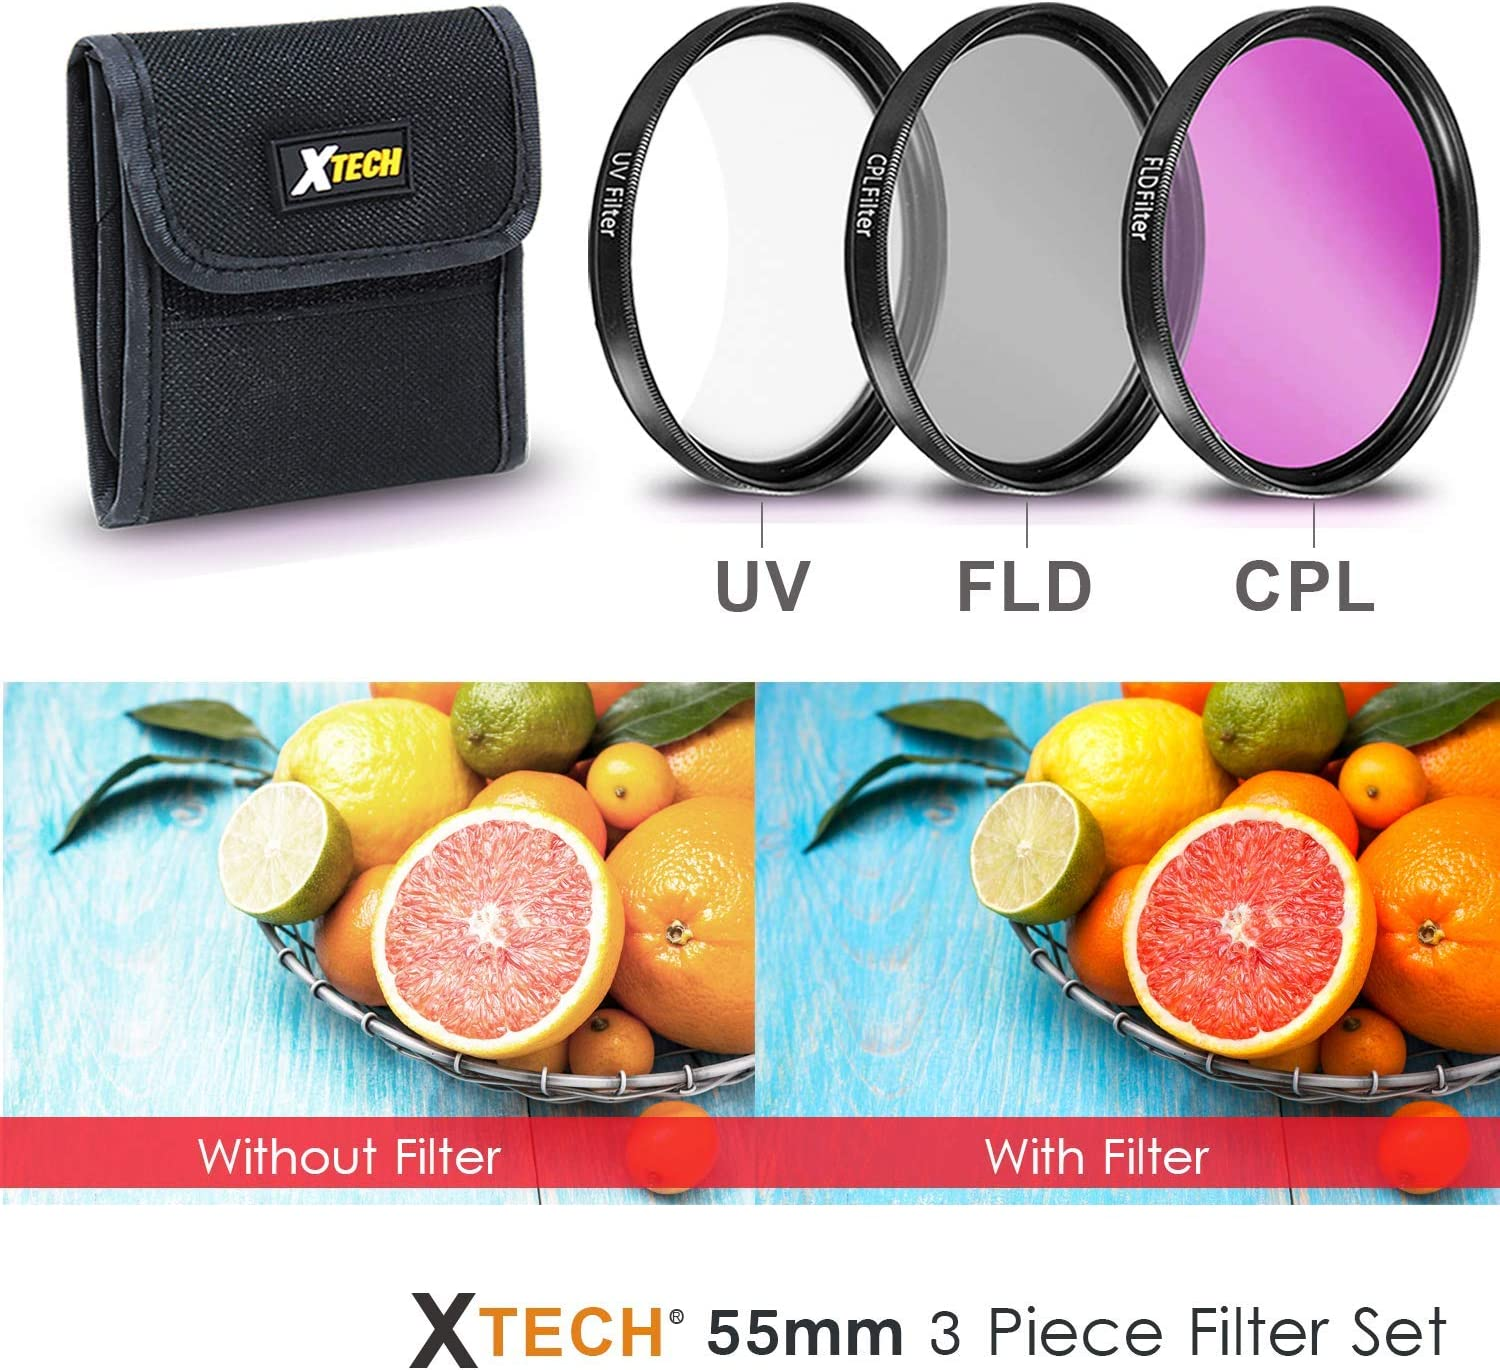 +1 +2 +4 +10 ND Filters Set ND2 ND4 ND8 55MM Professional Lens Filter Accessory Kit for Nikon D3400 D5600 D7500 Camera with Nikon AF-P DX 18-55mm Lens 4 Close-up Macro Filters UV FLD CPL